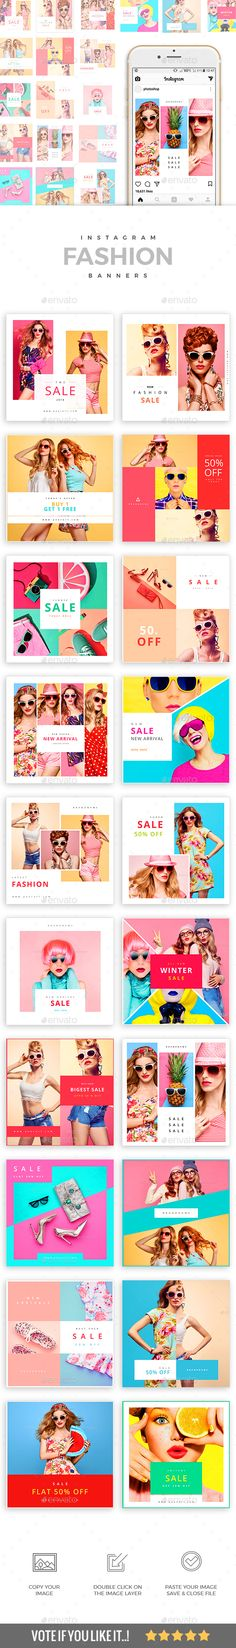 20 Fashion Instagram Banners — Photoshop PSD #promotion #online • Download ➝ https://graphicriver.net/item/20-fashion-instagram-banners/21158757?ref=pxcr